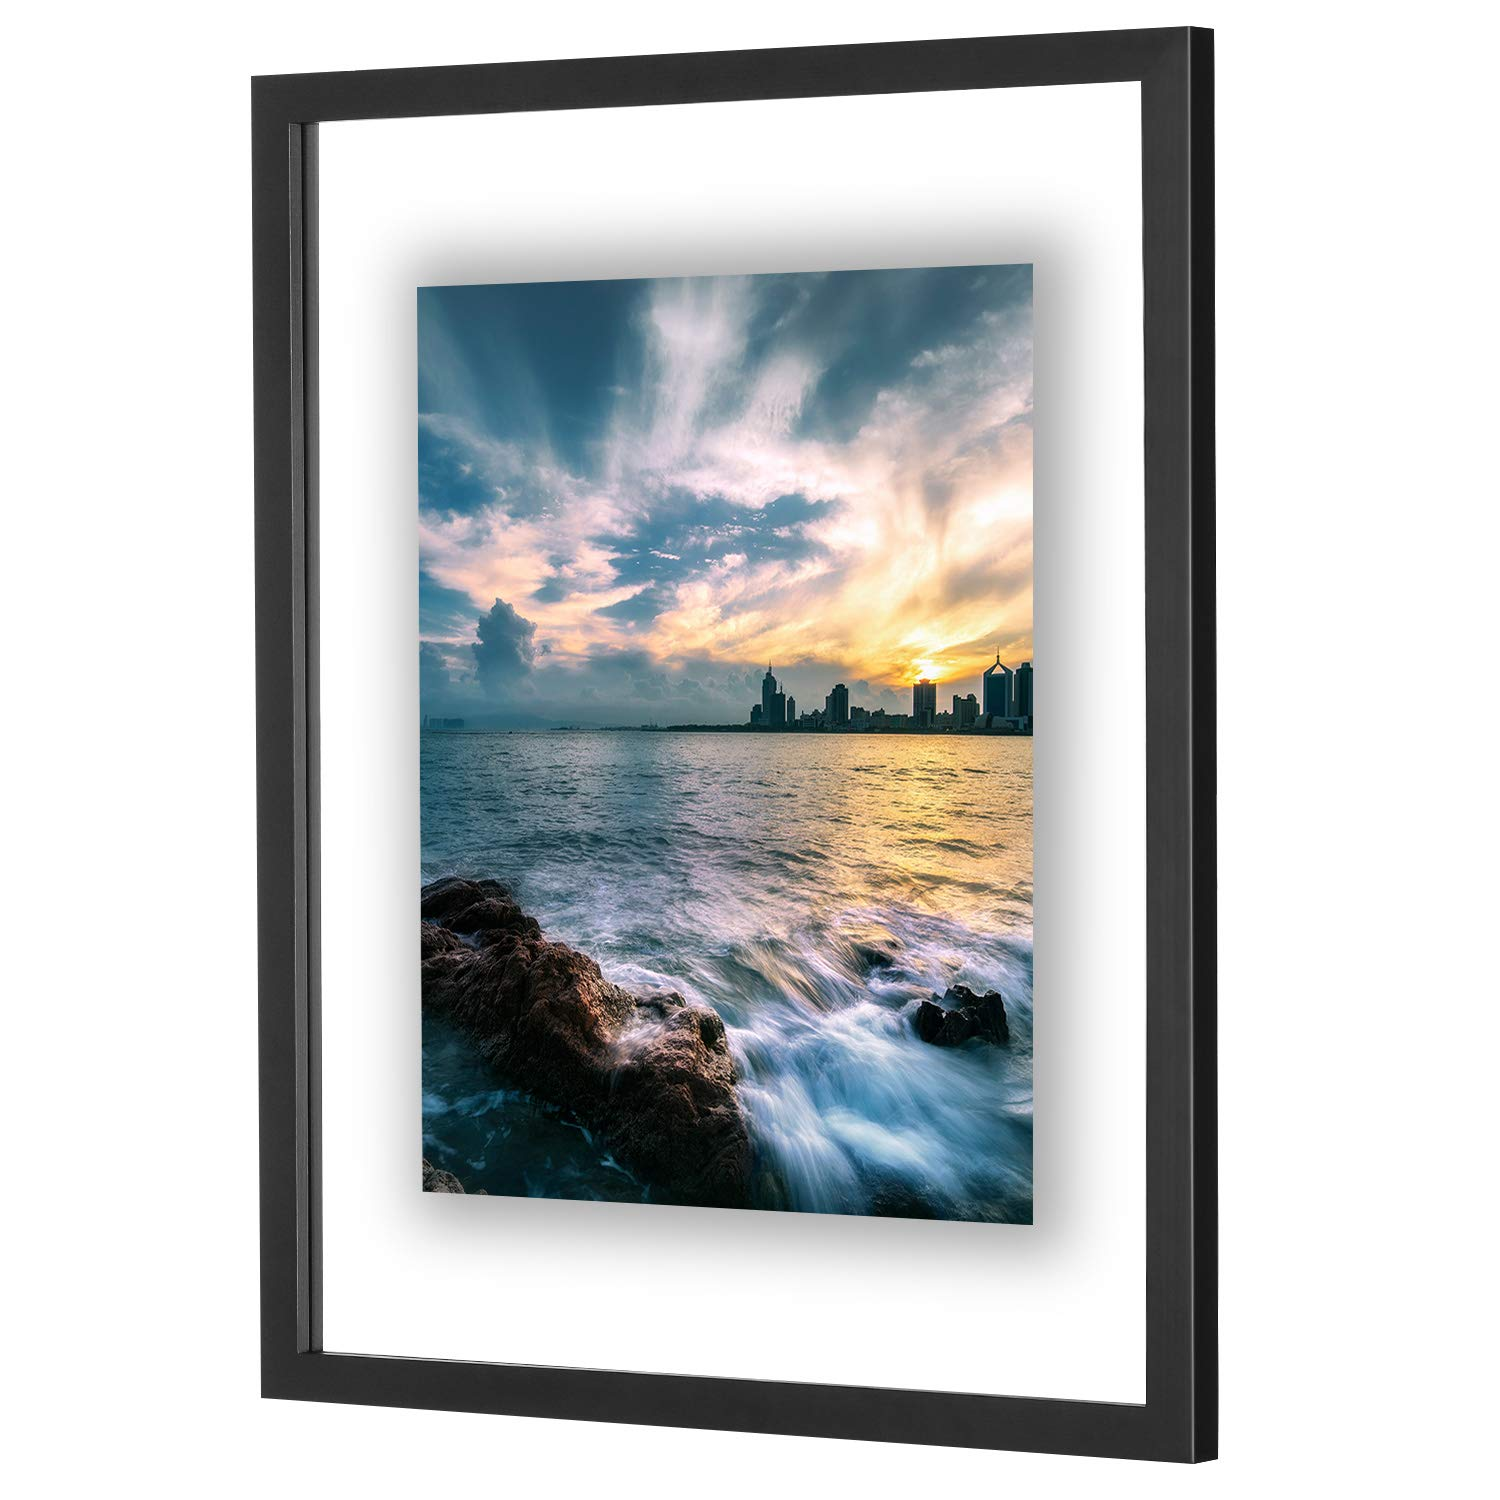 ONE WALL 16x20 Inch Floating Frame, Black Wood Double Glass Float Picture Frame Display 16x20/11x14 Inch Photos or Plant or Petal Specimens for Wall Hanging - Mounting Accessories Included by ONE WALL